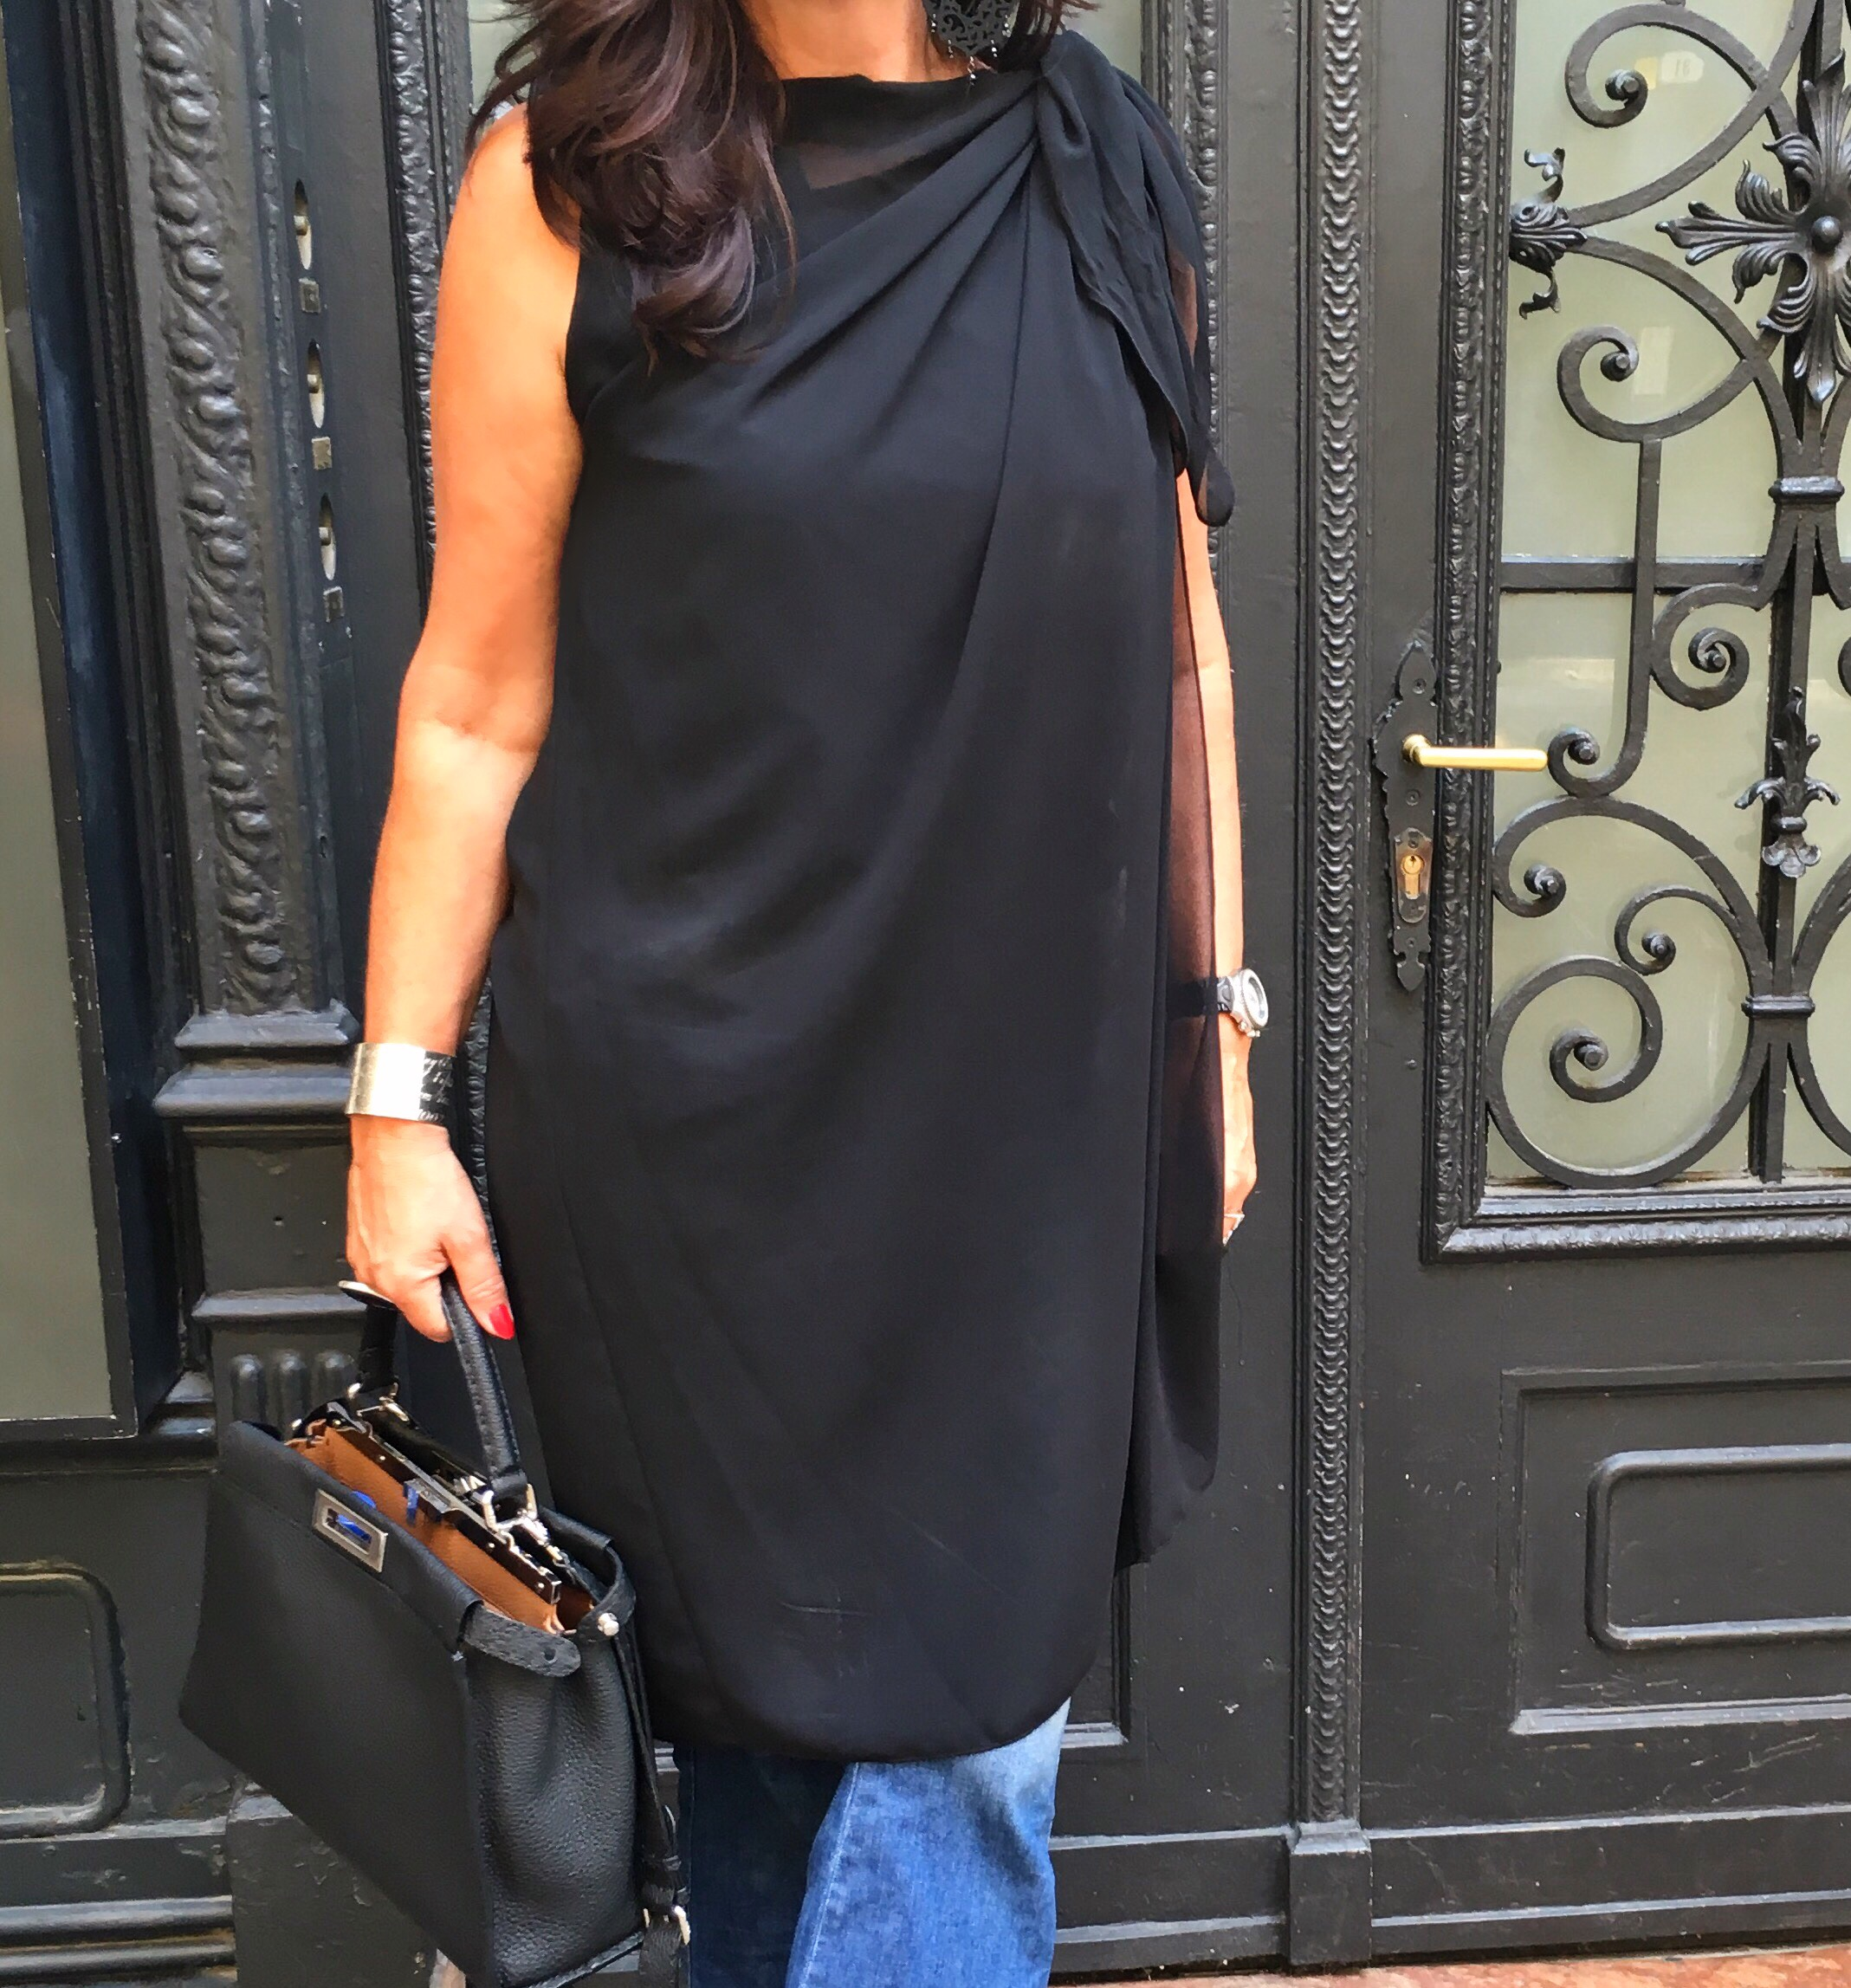 Black Top with Jeans, See by Chloe, Fendibag, Fendi Accessoires, Prada, Streetstyle, Streetfashion, Style, No Age, Tiffany, Shopping in Italy, translucent